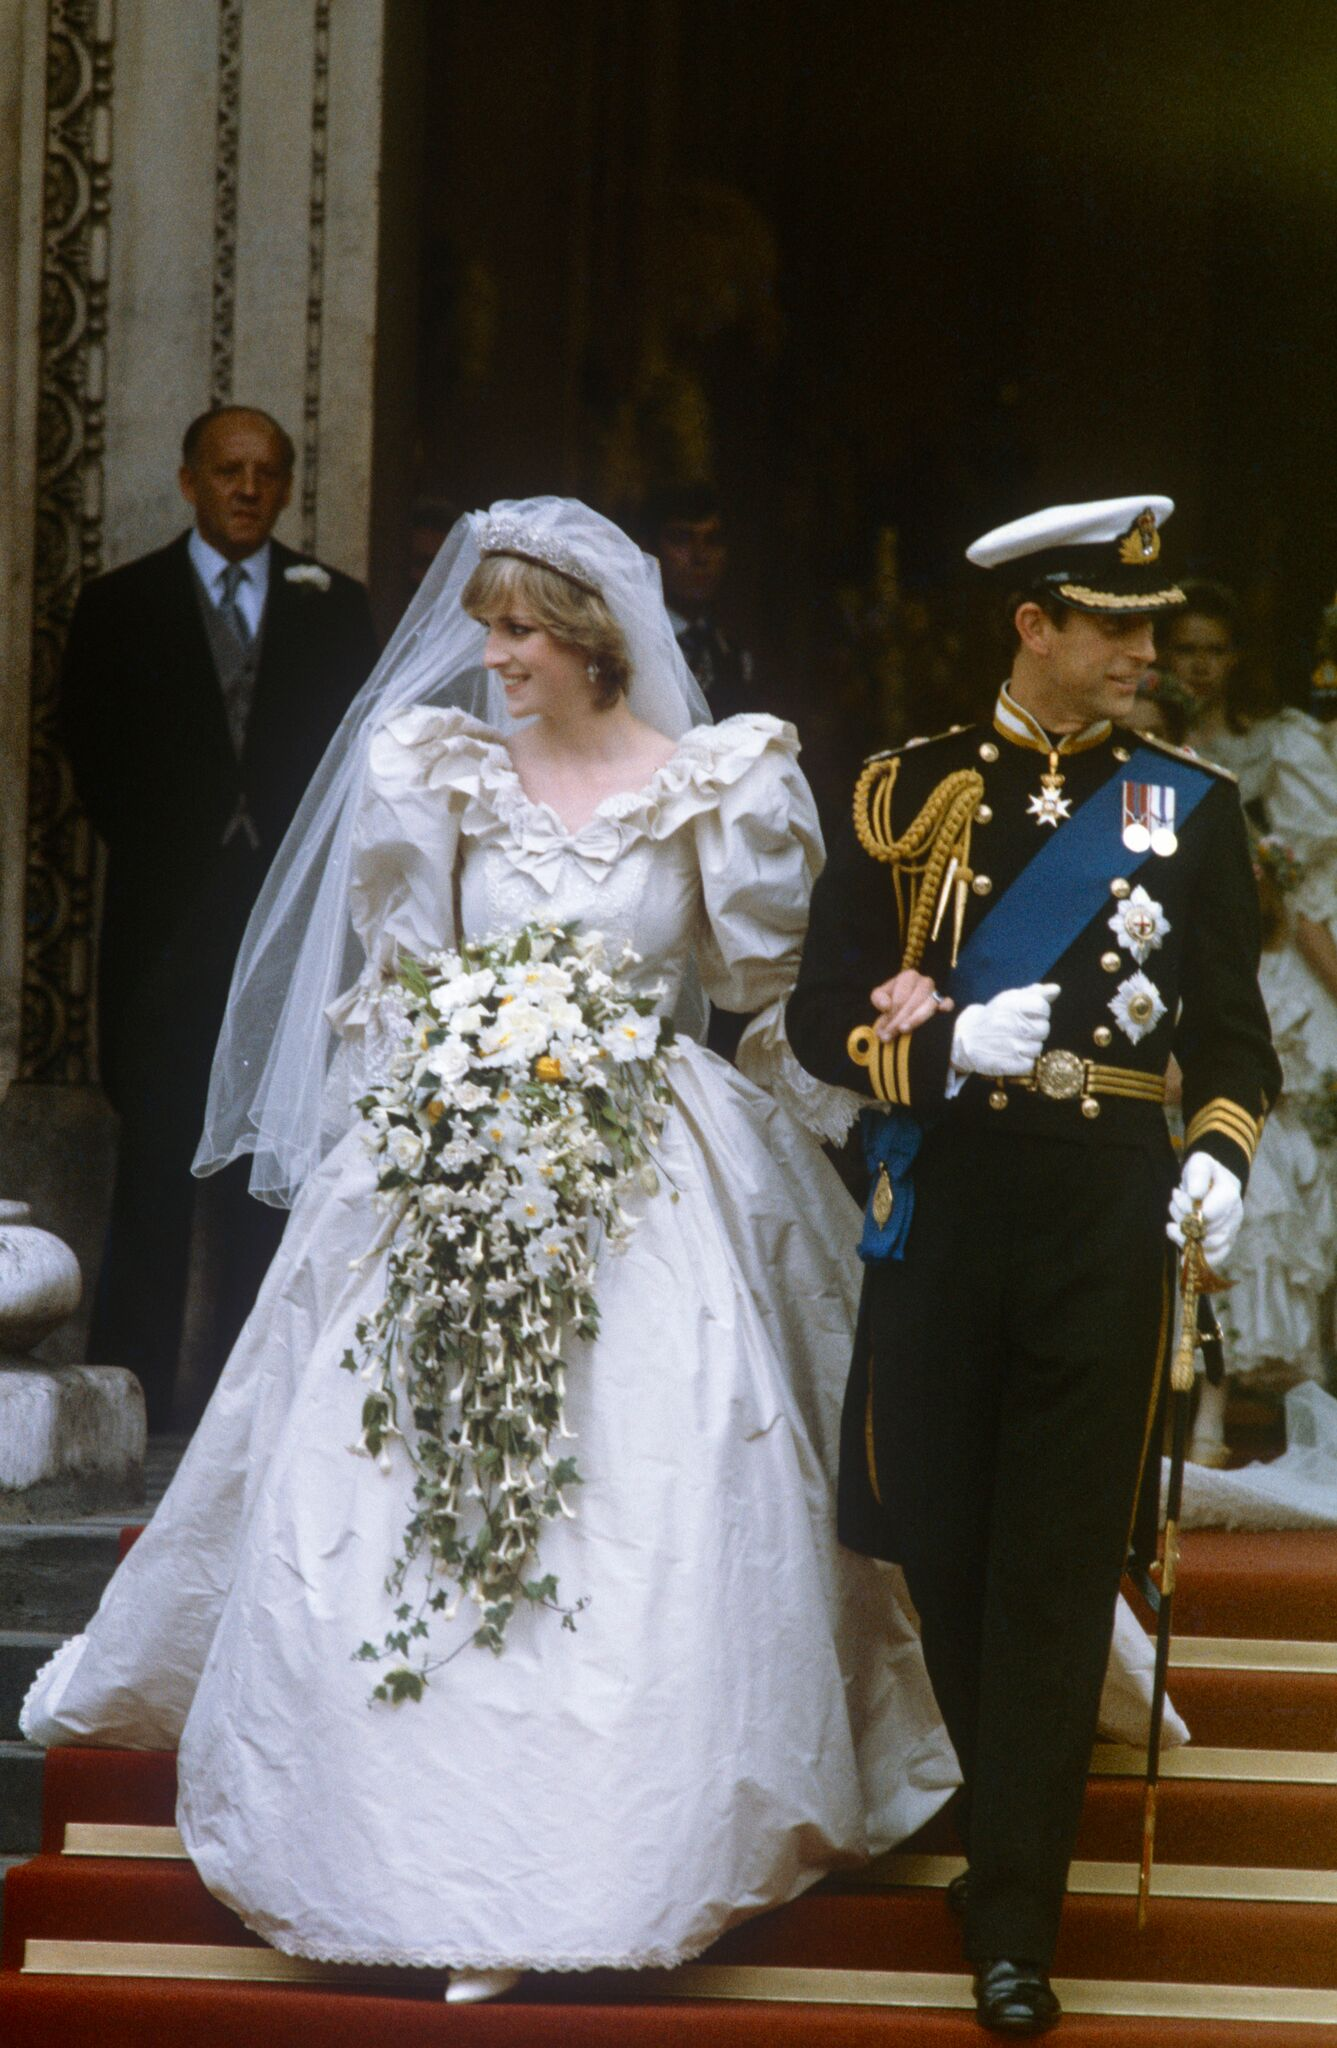 Princess Diana and Prince Charles leaving the church on their wedding day | Photo : Getty Images